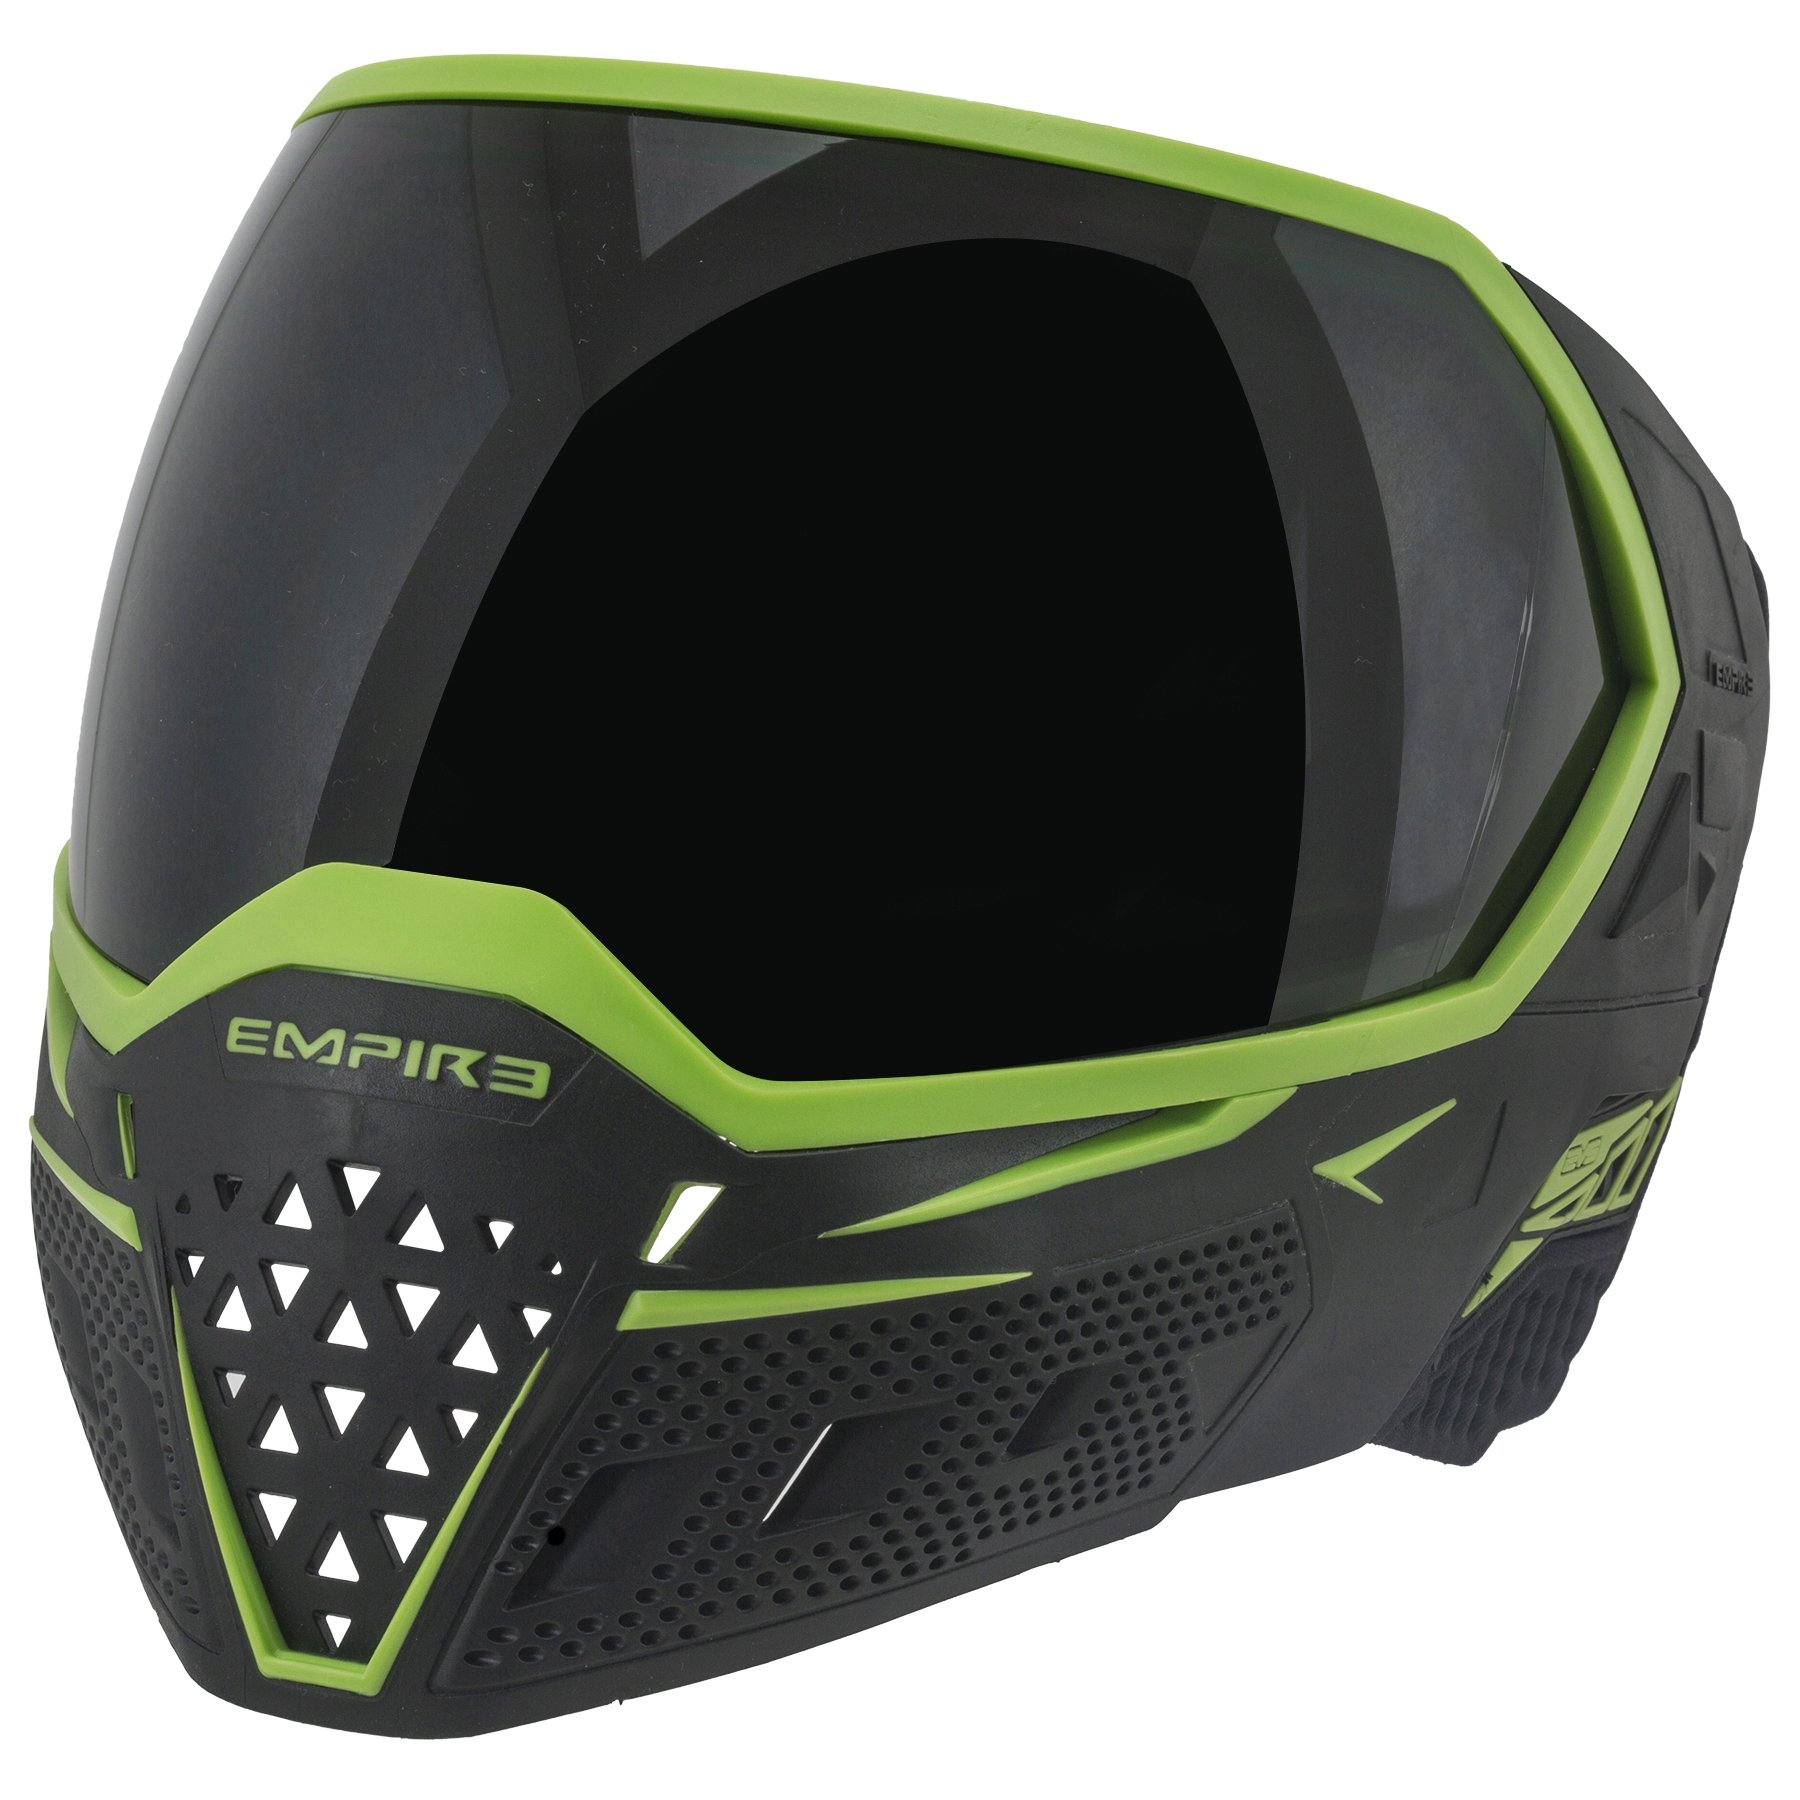 Empire EVS Thermal Paintball Goggles - Black/Lime by Empire